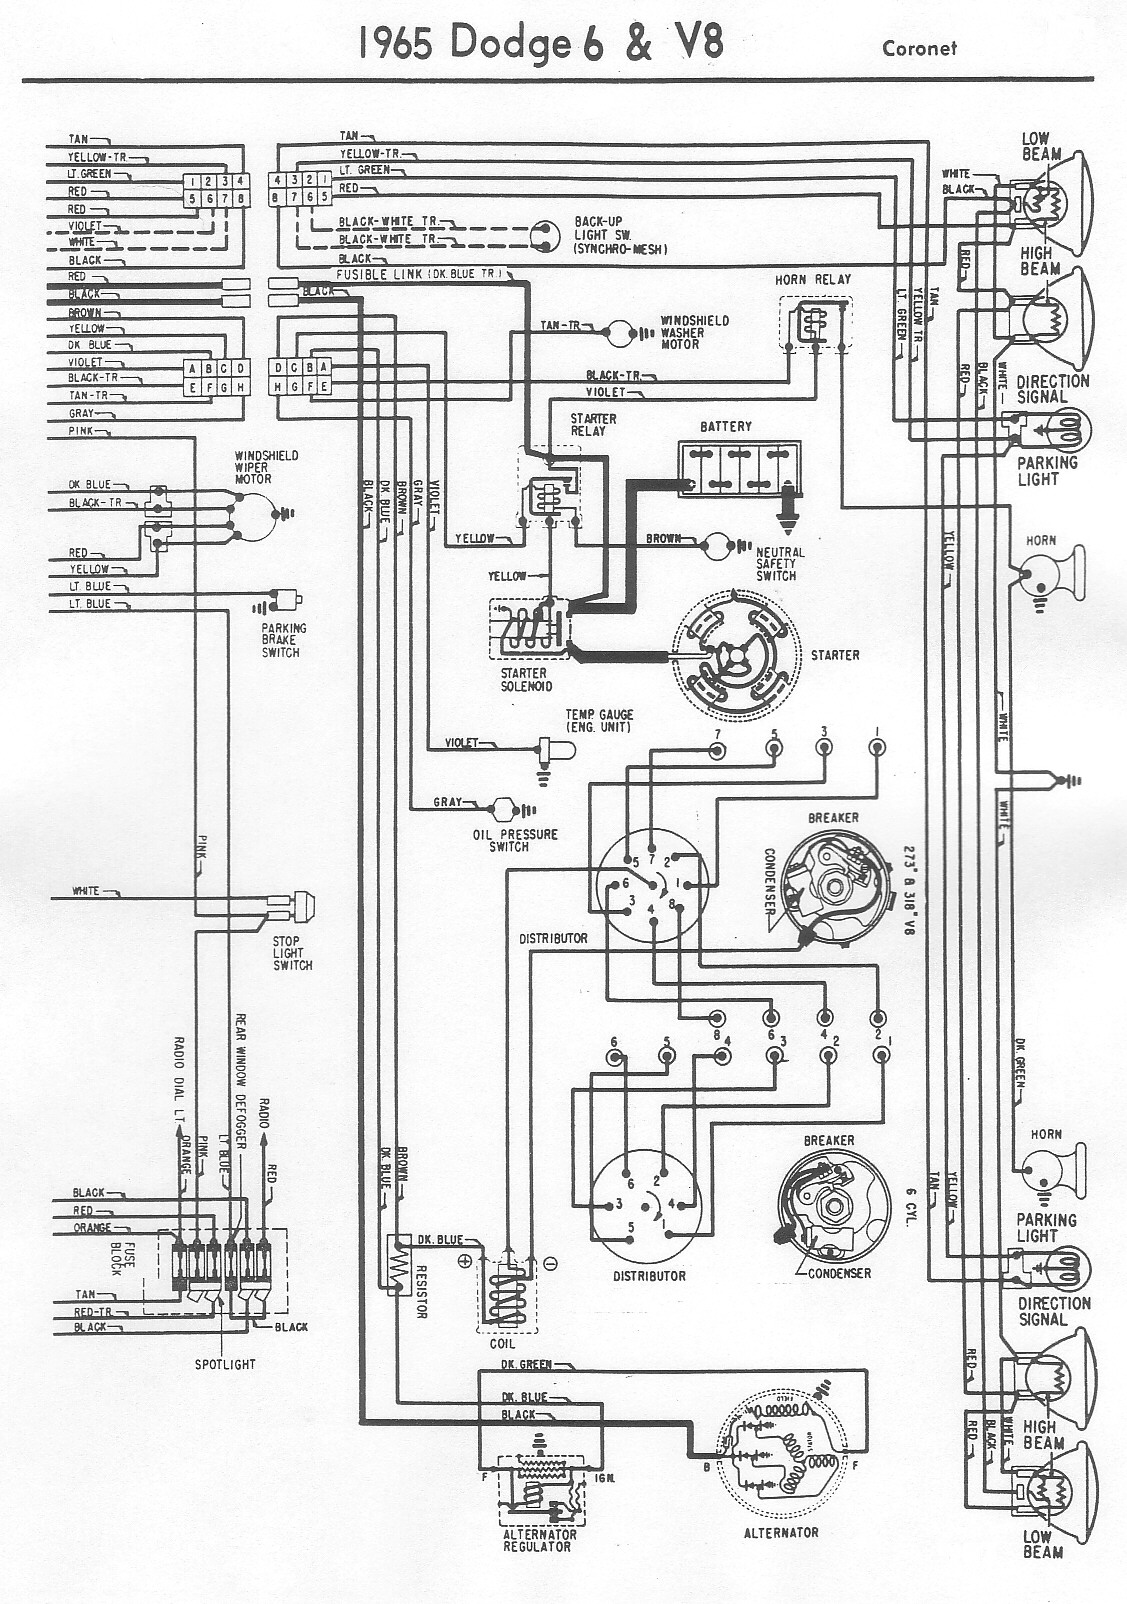 medium resolution of 1964 dodge dart wiring diagram wiring diagrams transfer1965 dodge wiring diagram wiring diagram name 1964 dodge